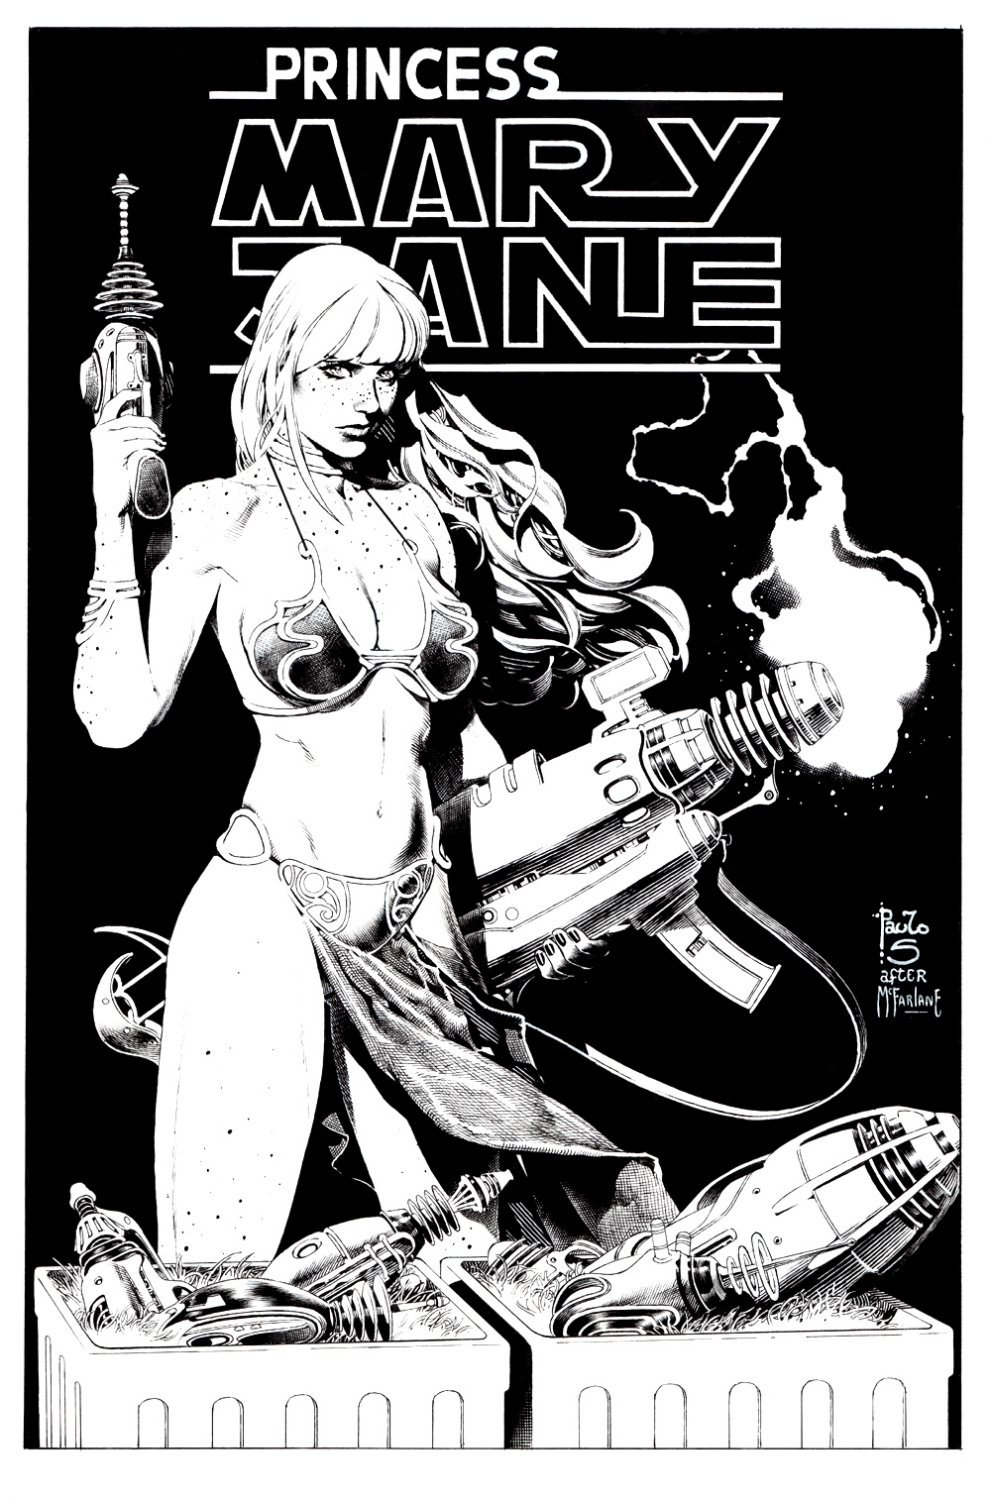 Amazing Mary Jane #10 Unpublished Cover (Spawn #7 Cover homage!)